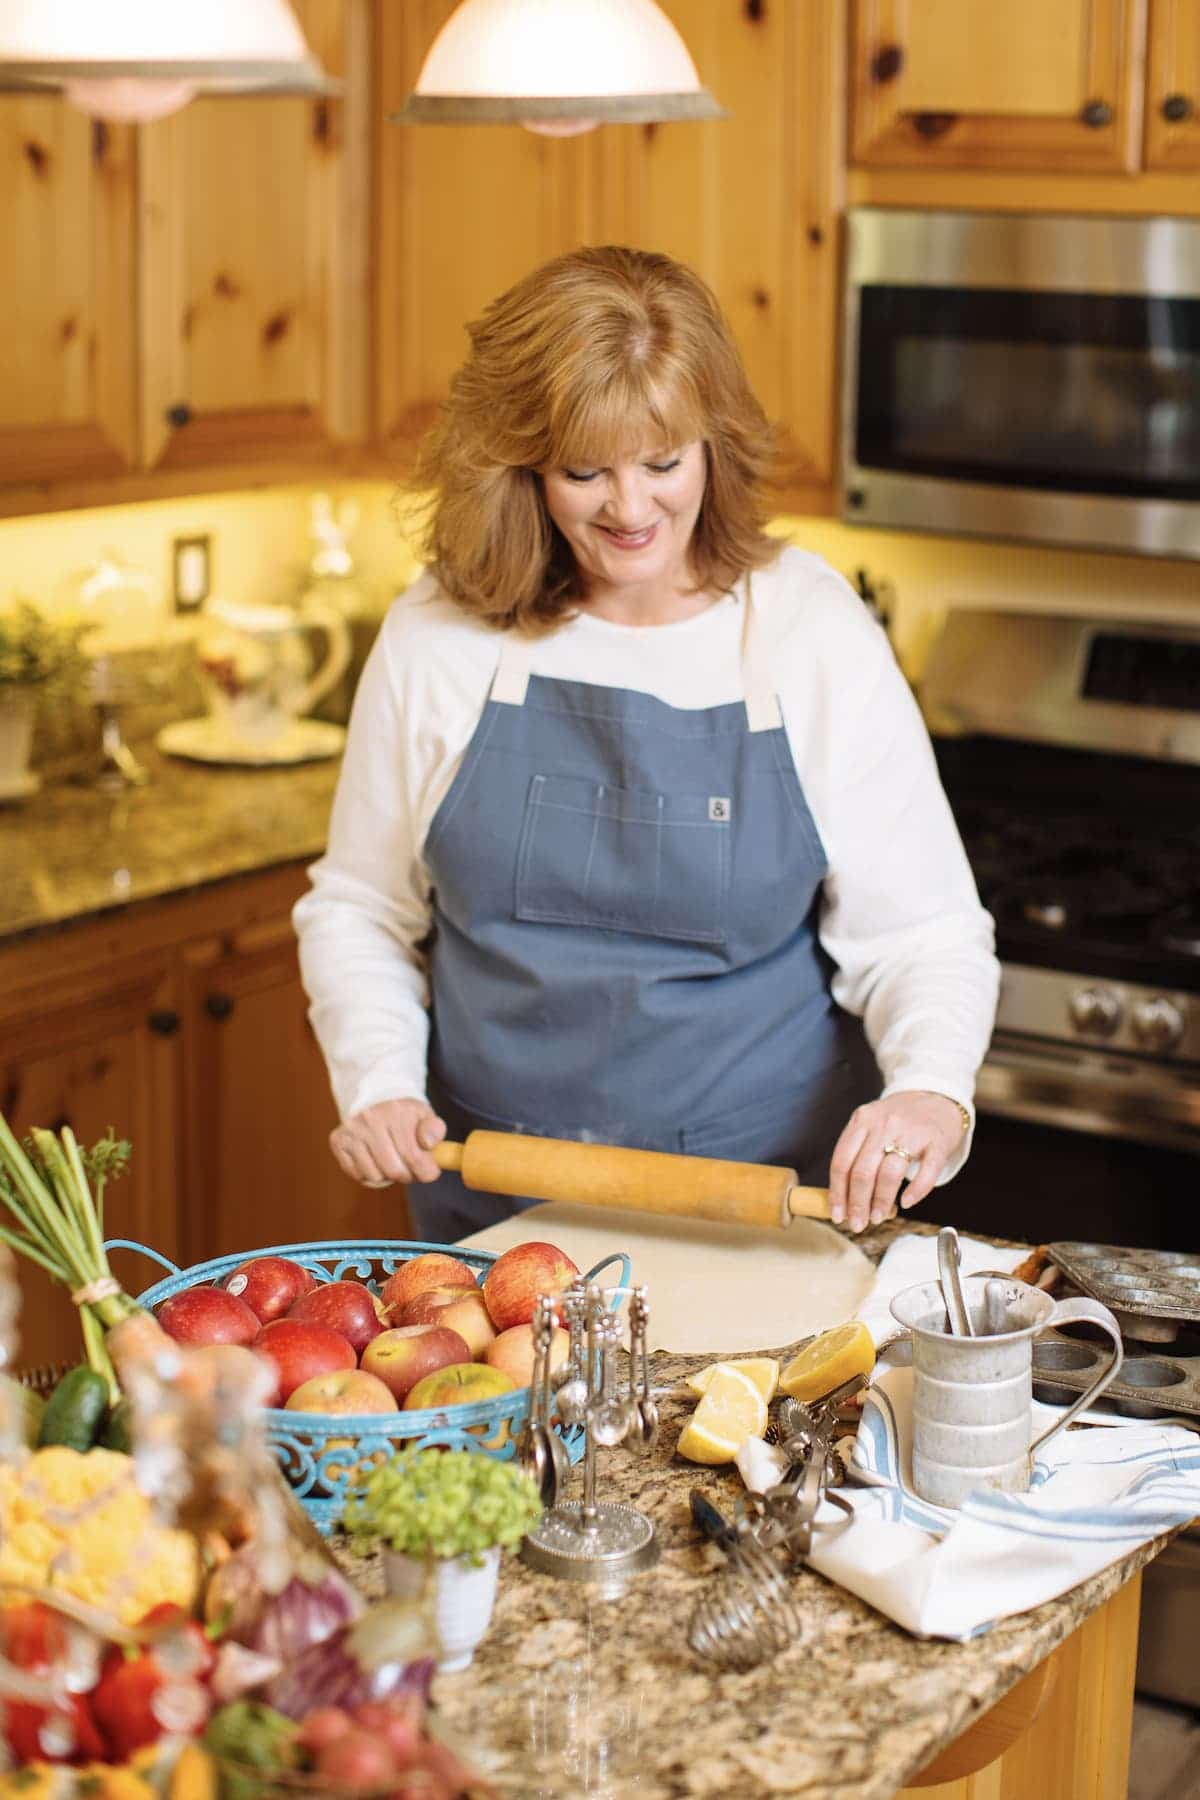 picture of studio delicious author Paige in the kitchen chopping vegetables